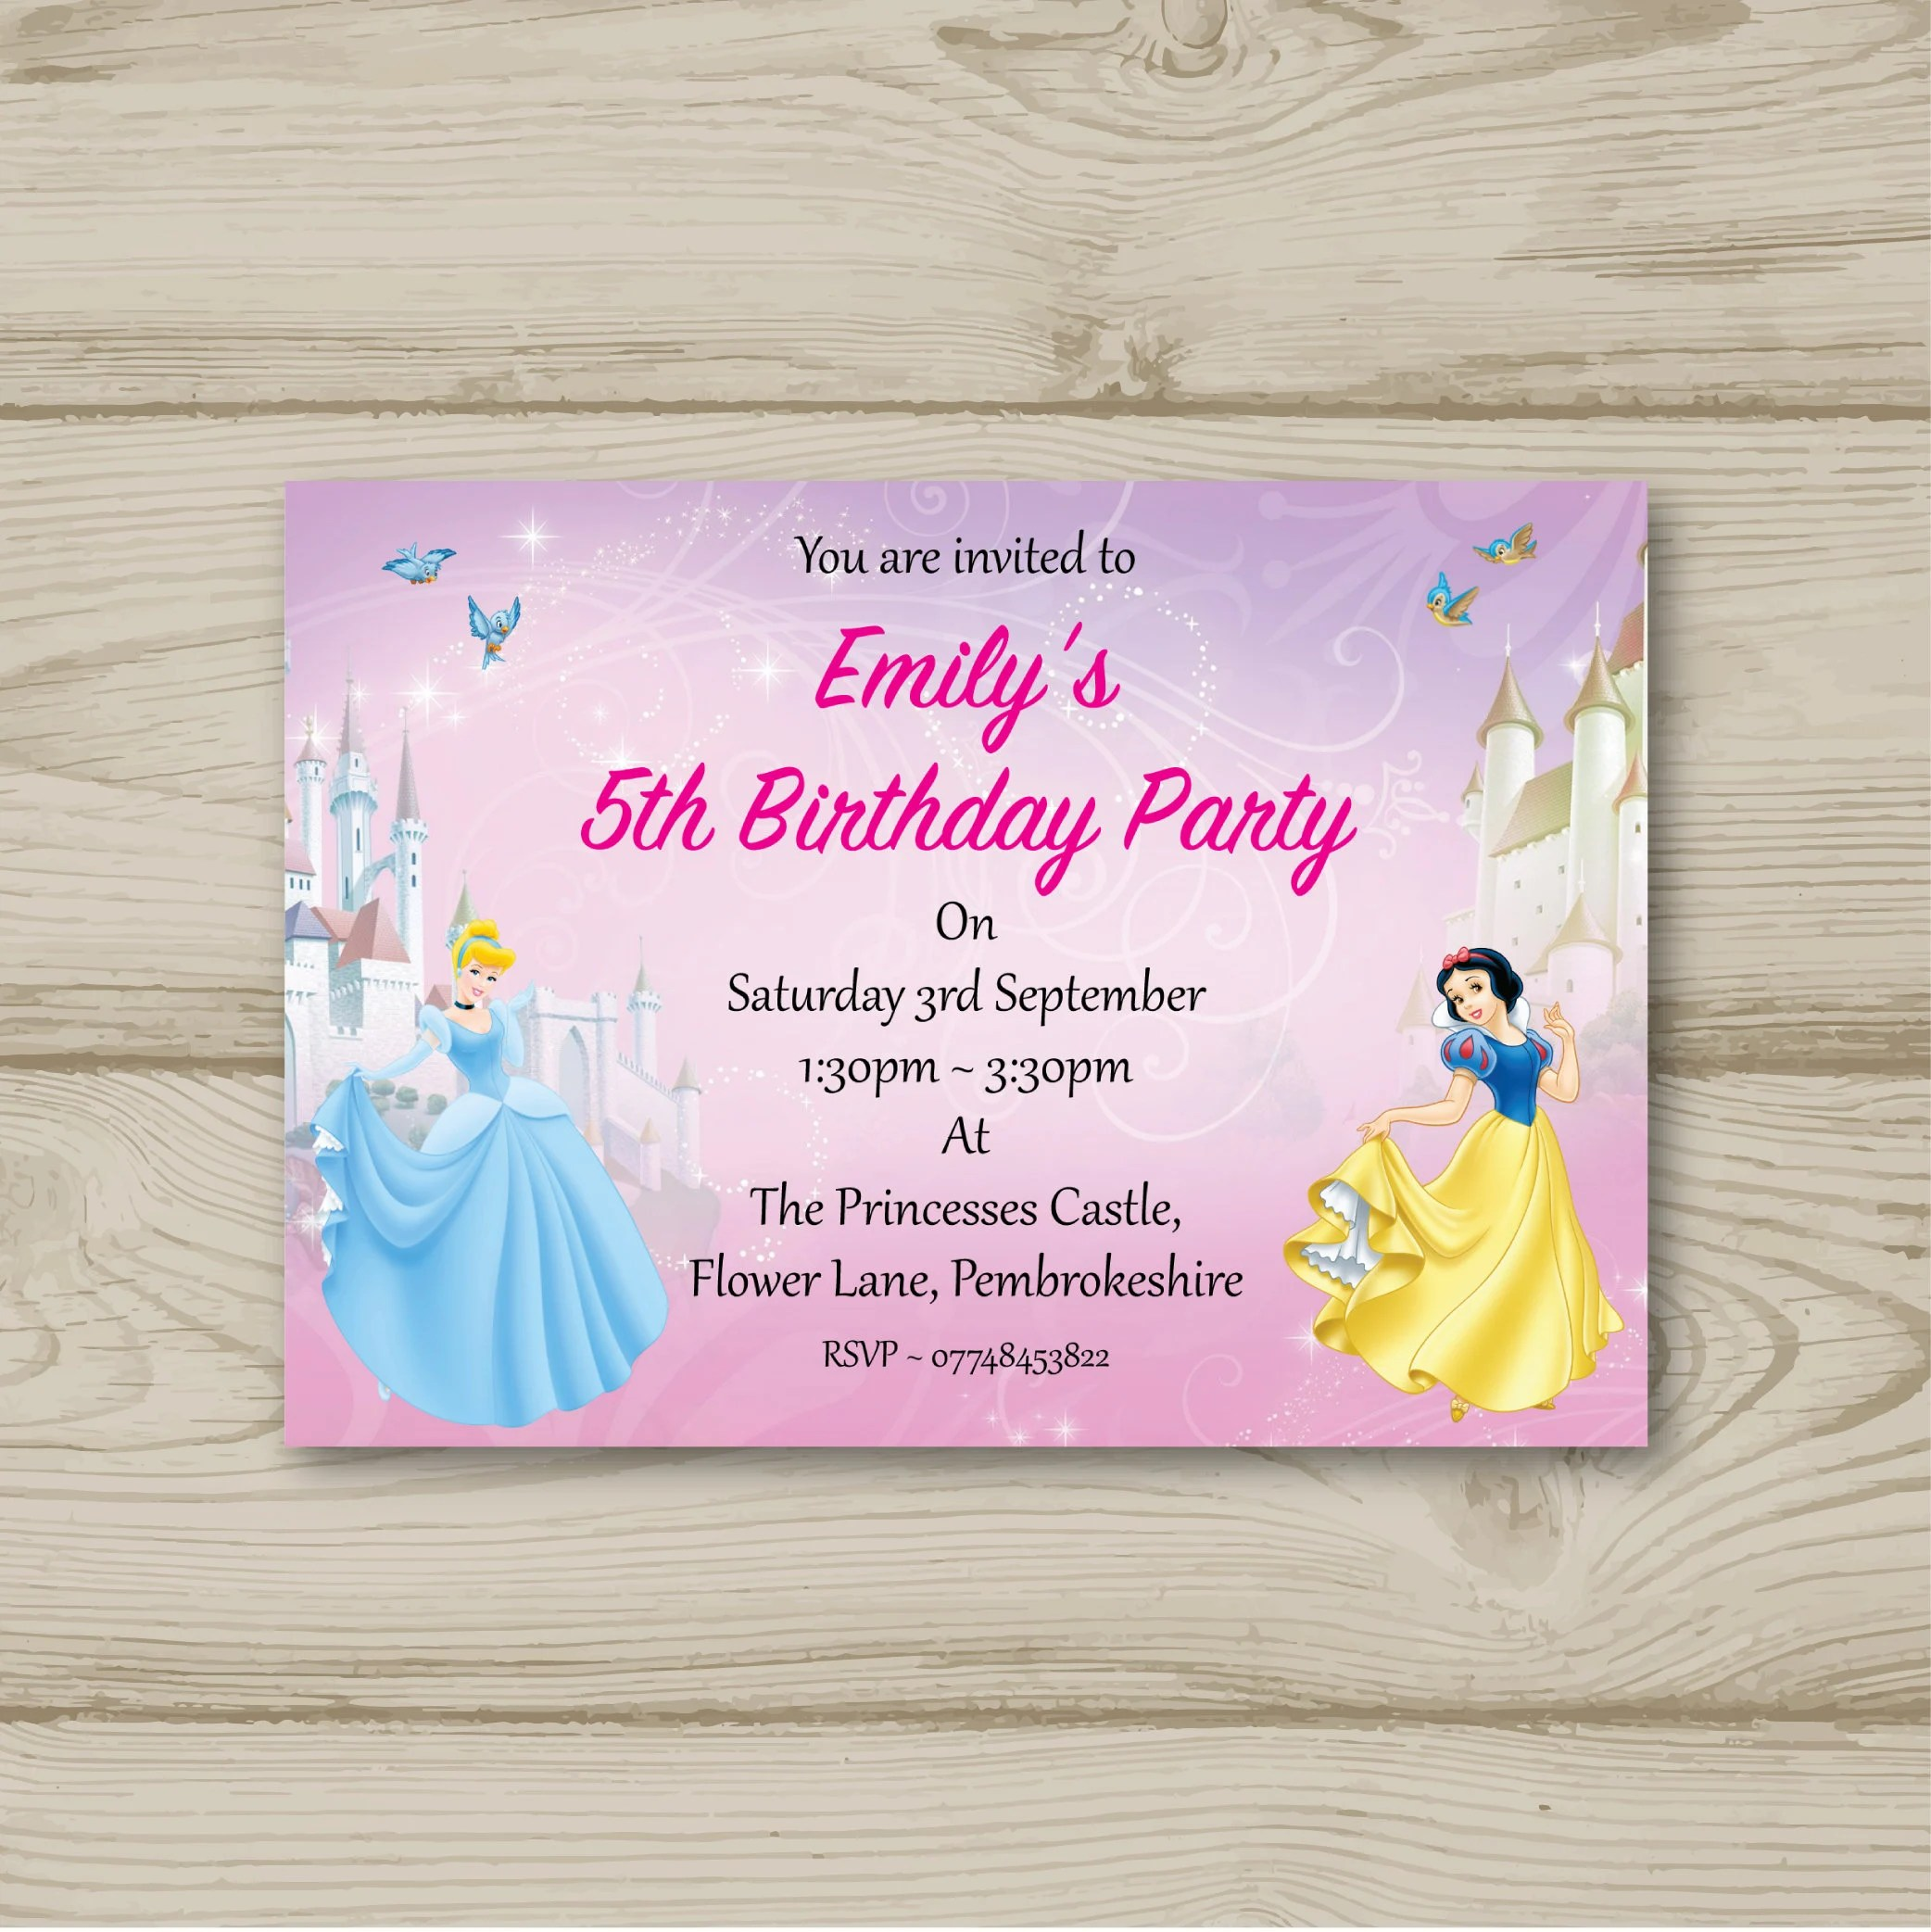 Greeting Cards Party Supply 10 Personalised Birthday Party Invitations Disney Princess Snow White Greeting Cards Invitations